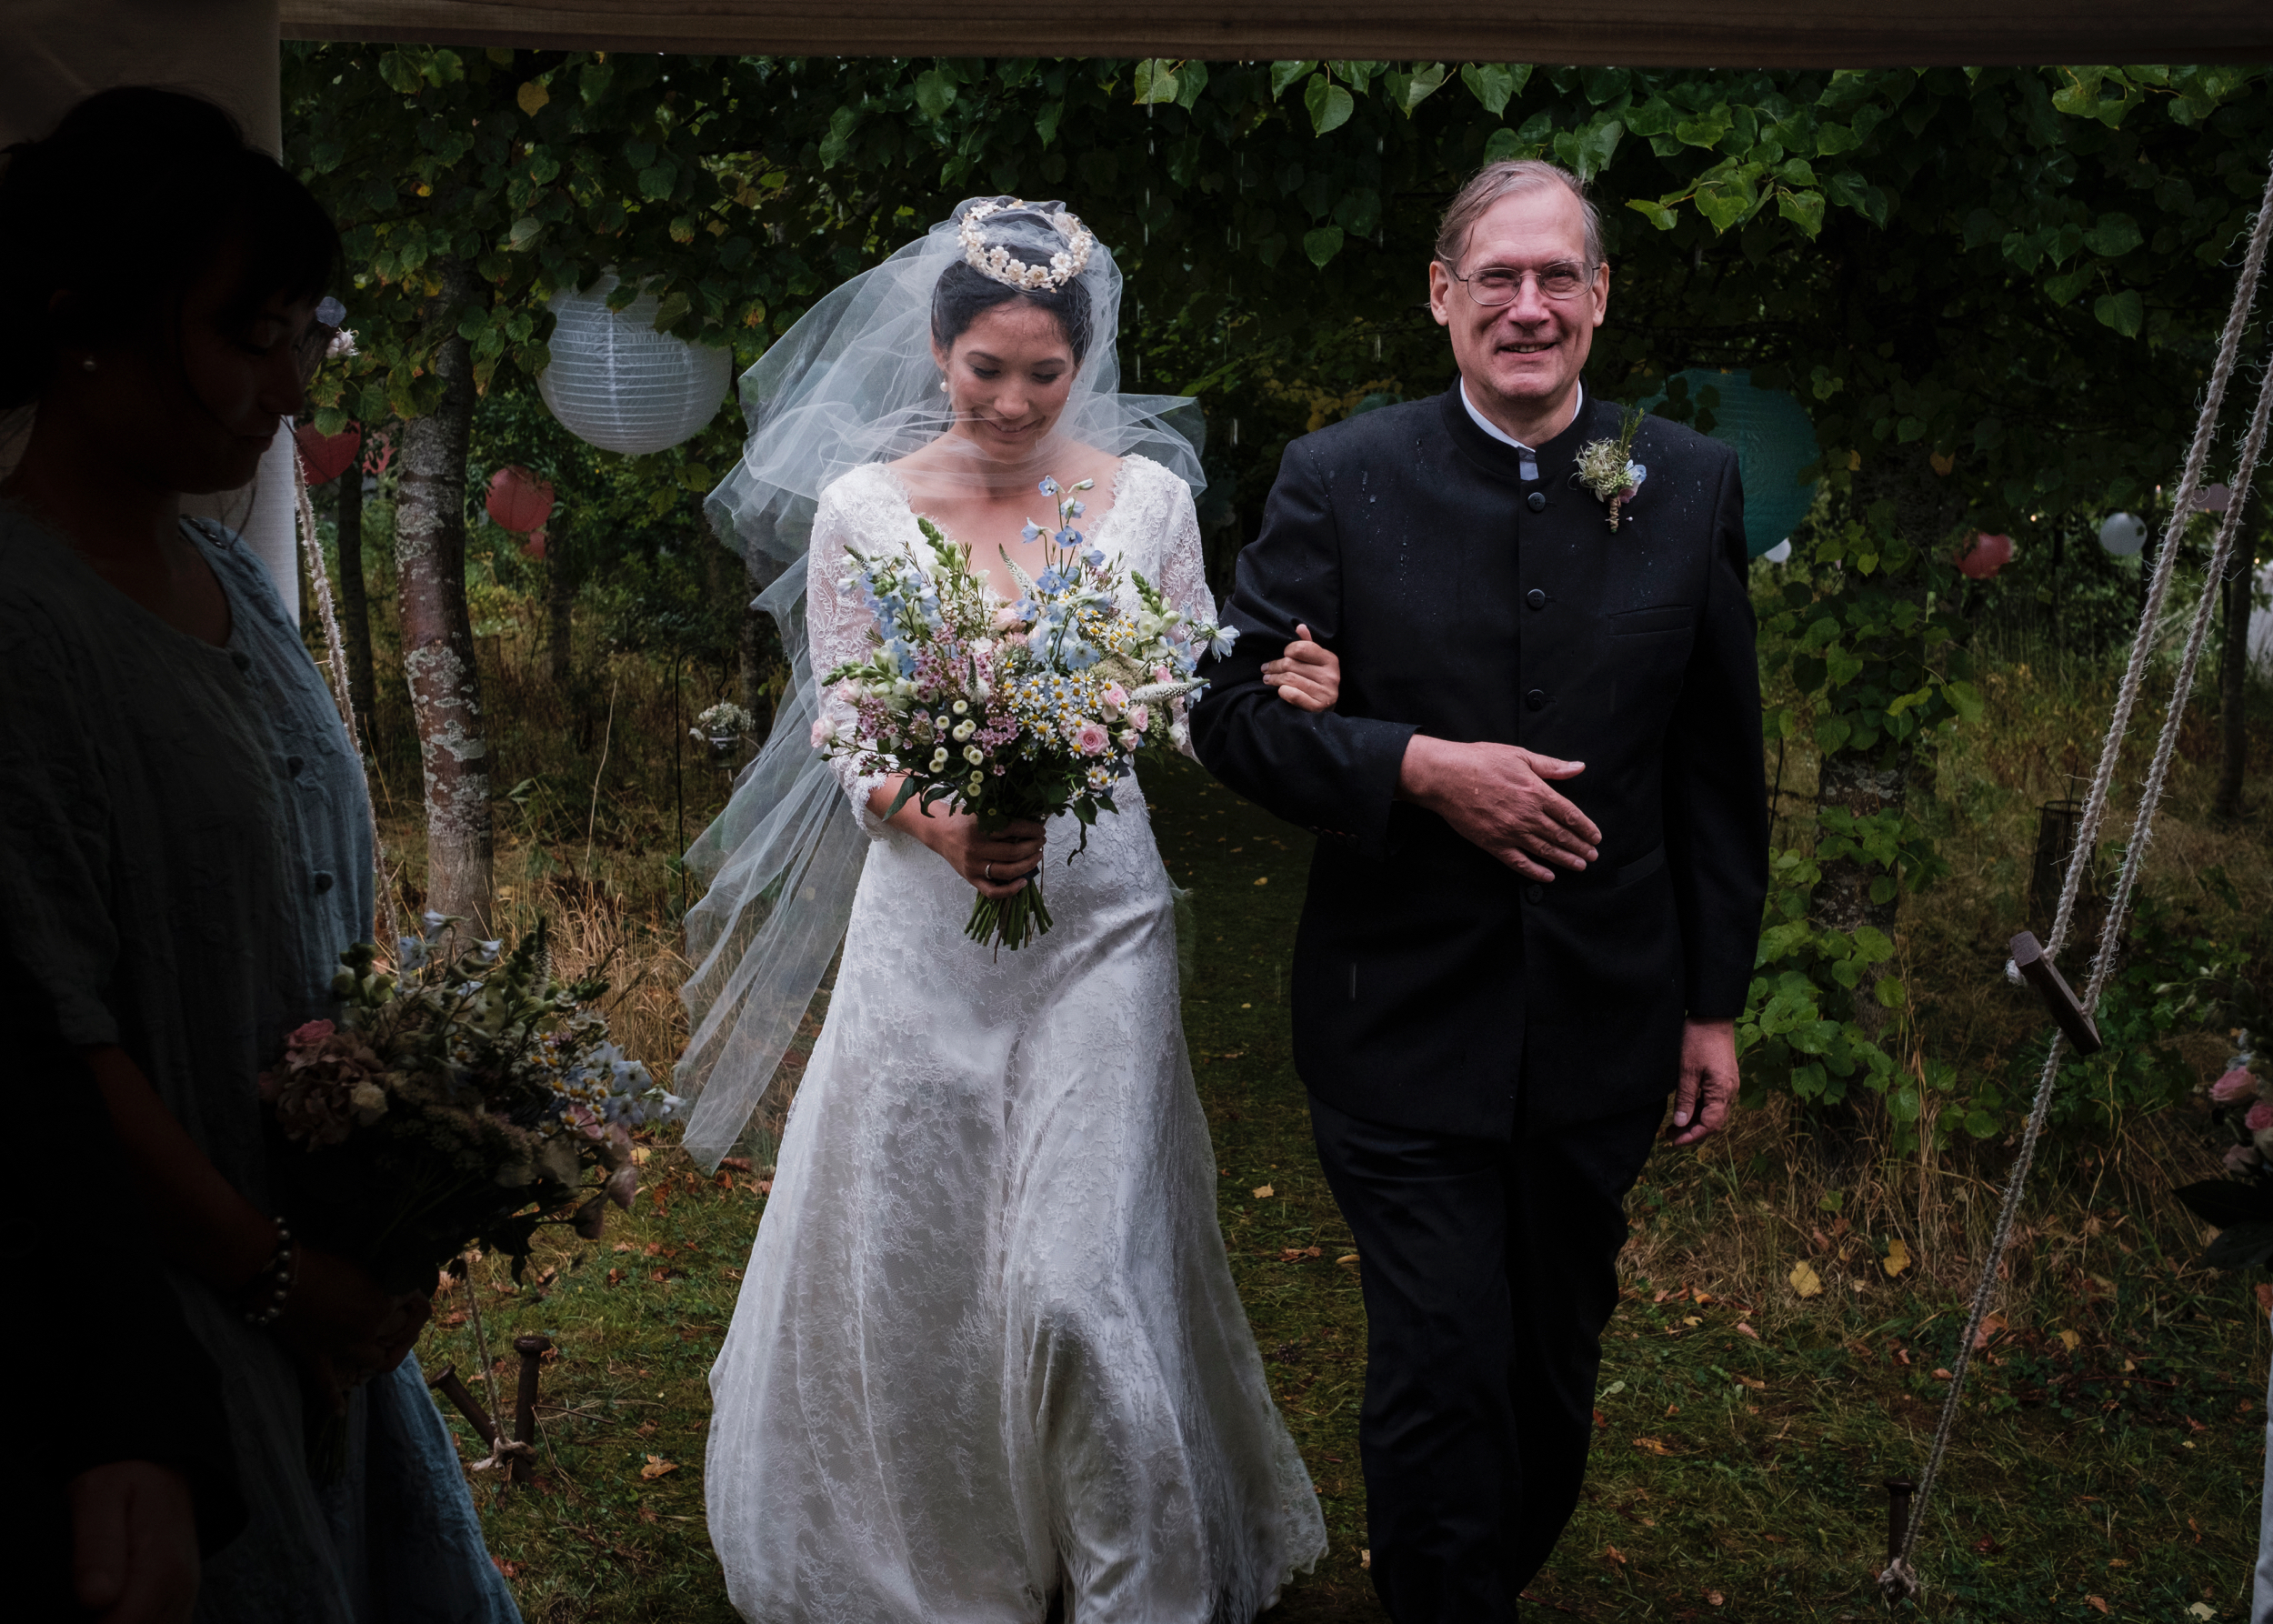 APhotograph from a country wedding in Gloucestershire of a bride walking down the aisle with her father in the rain